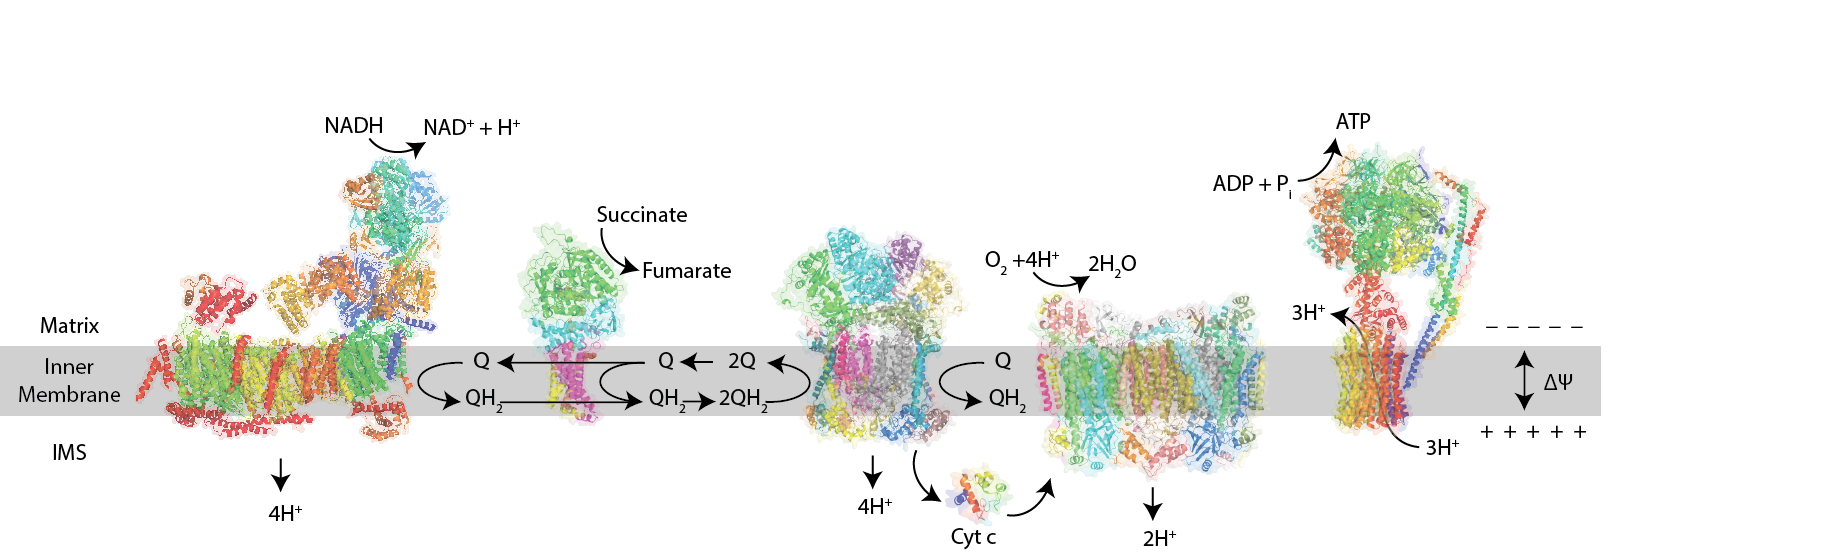 Mitochondrial oxidative phosphorylation and protein complexes